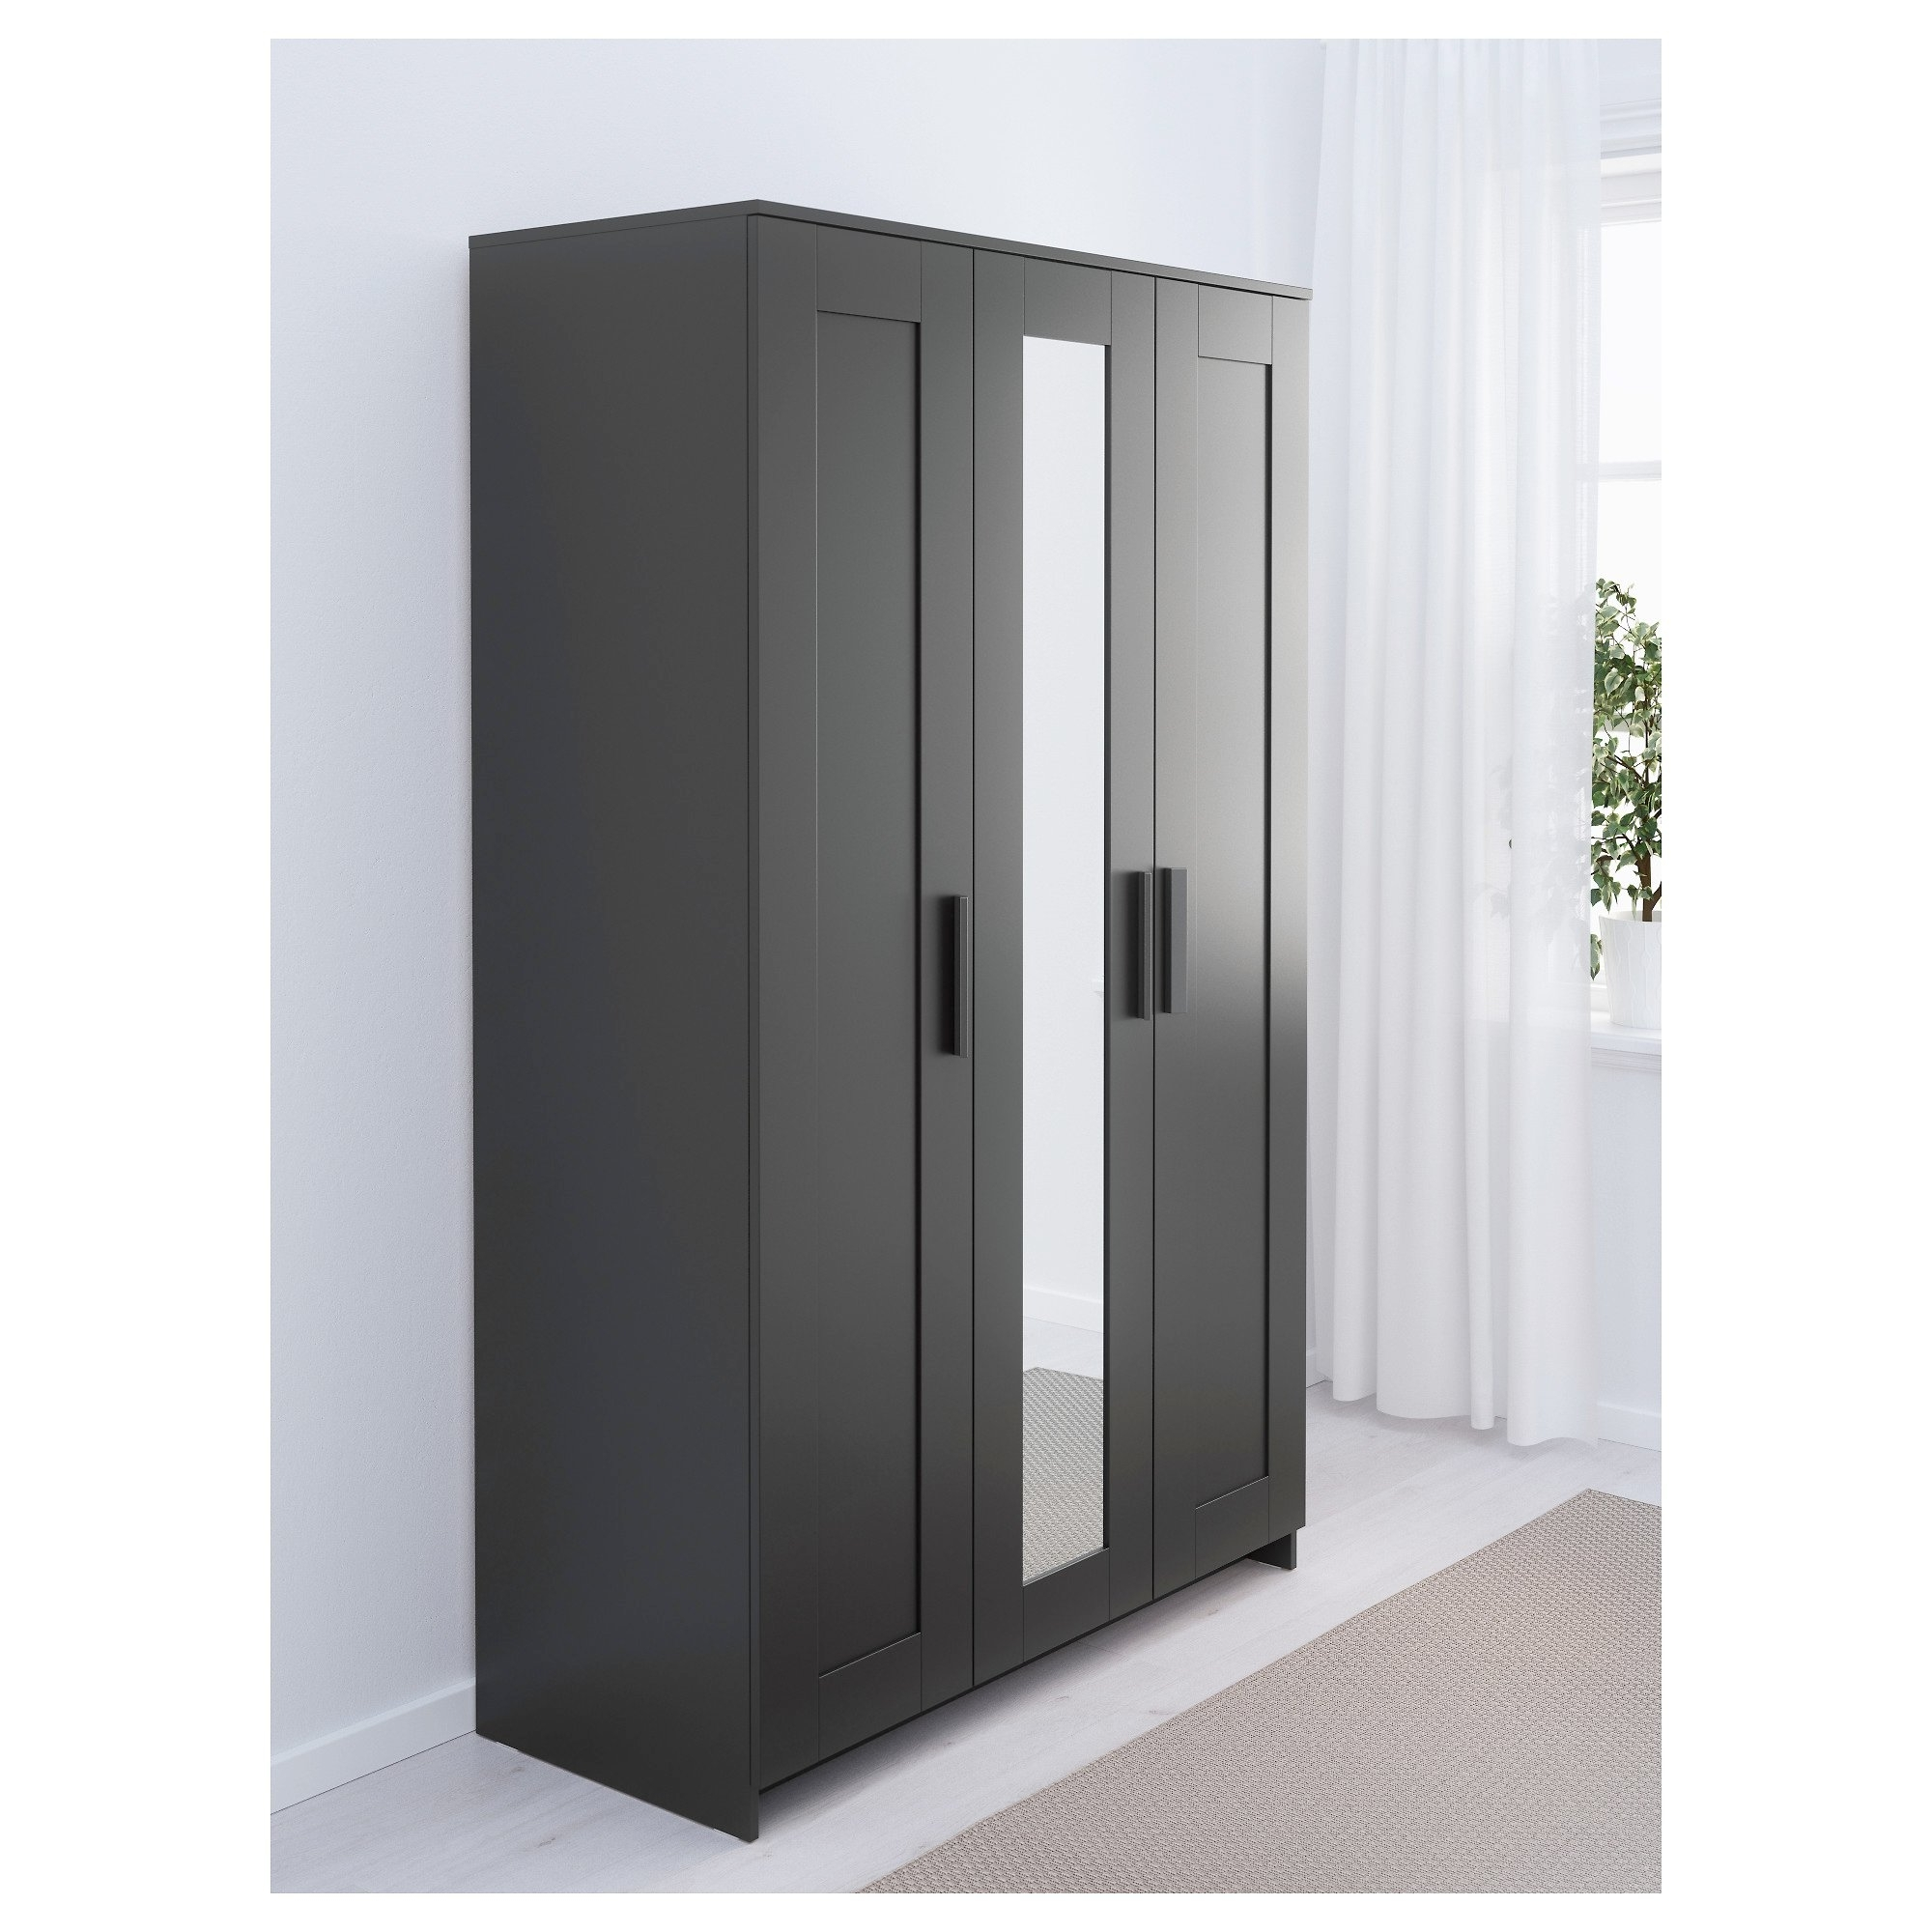 Preferred Nightstand : Dazzling Awesome Black Wardrobes Brimnes Wardrobe Within Black Wardrobes (View 14 of 15)